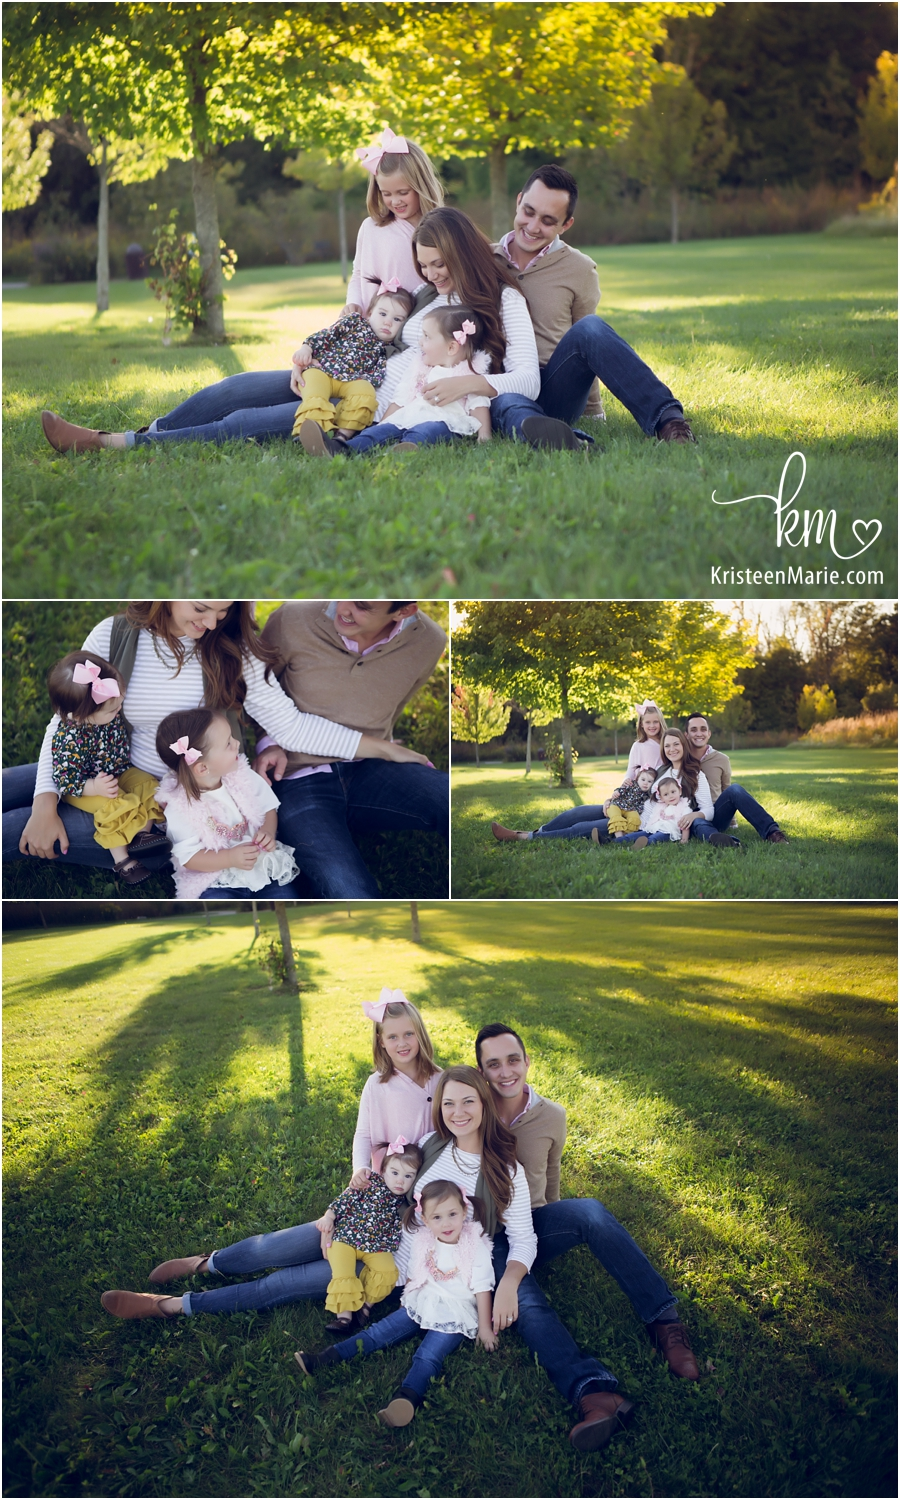 family pictures by KristeenMarie Photography